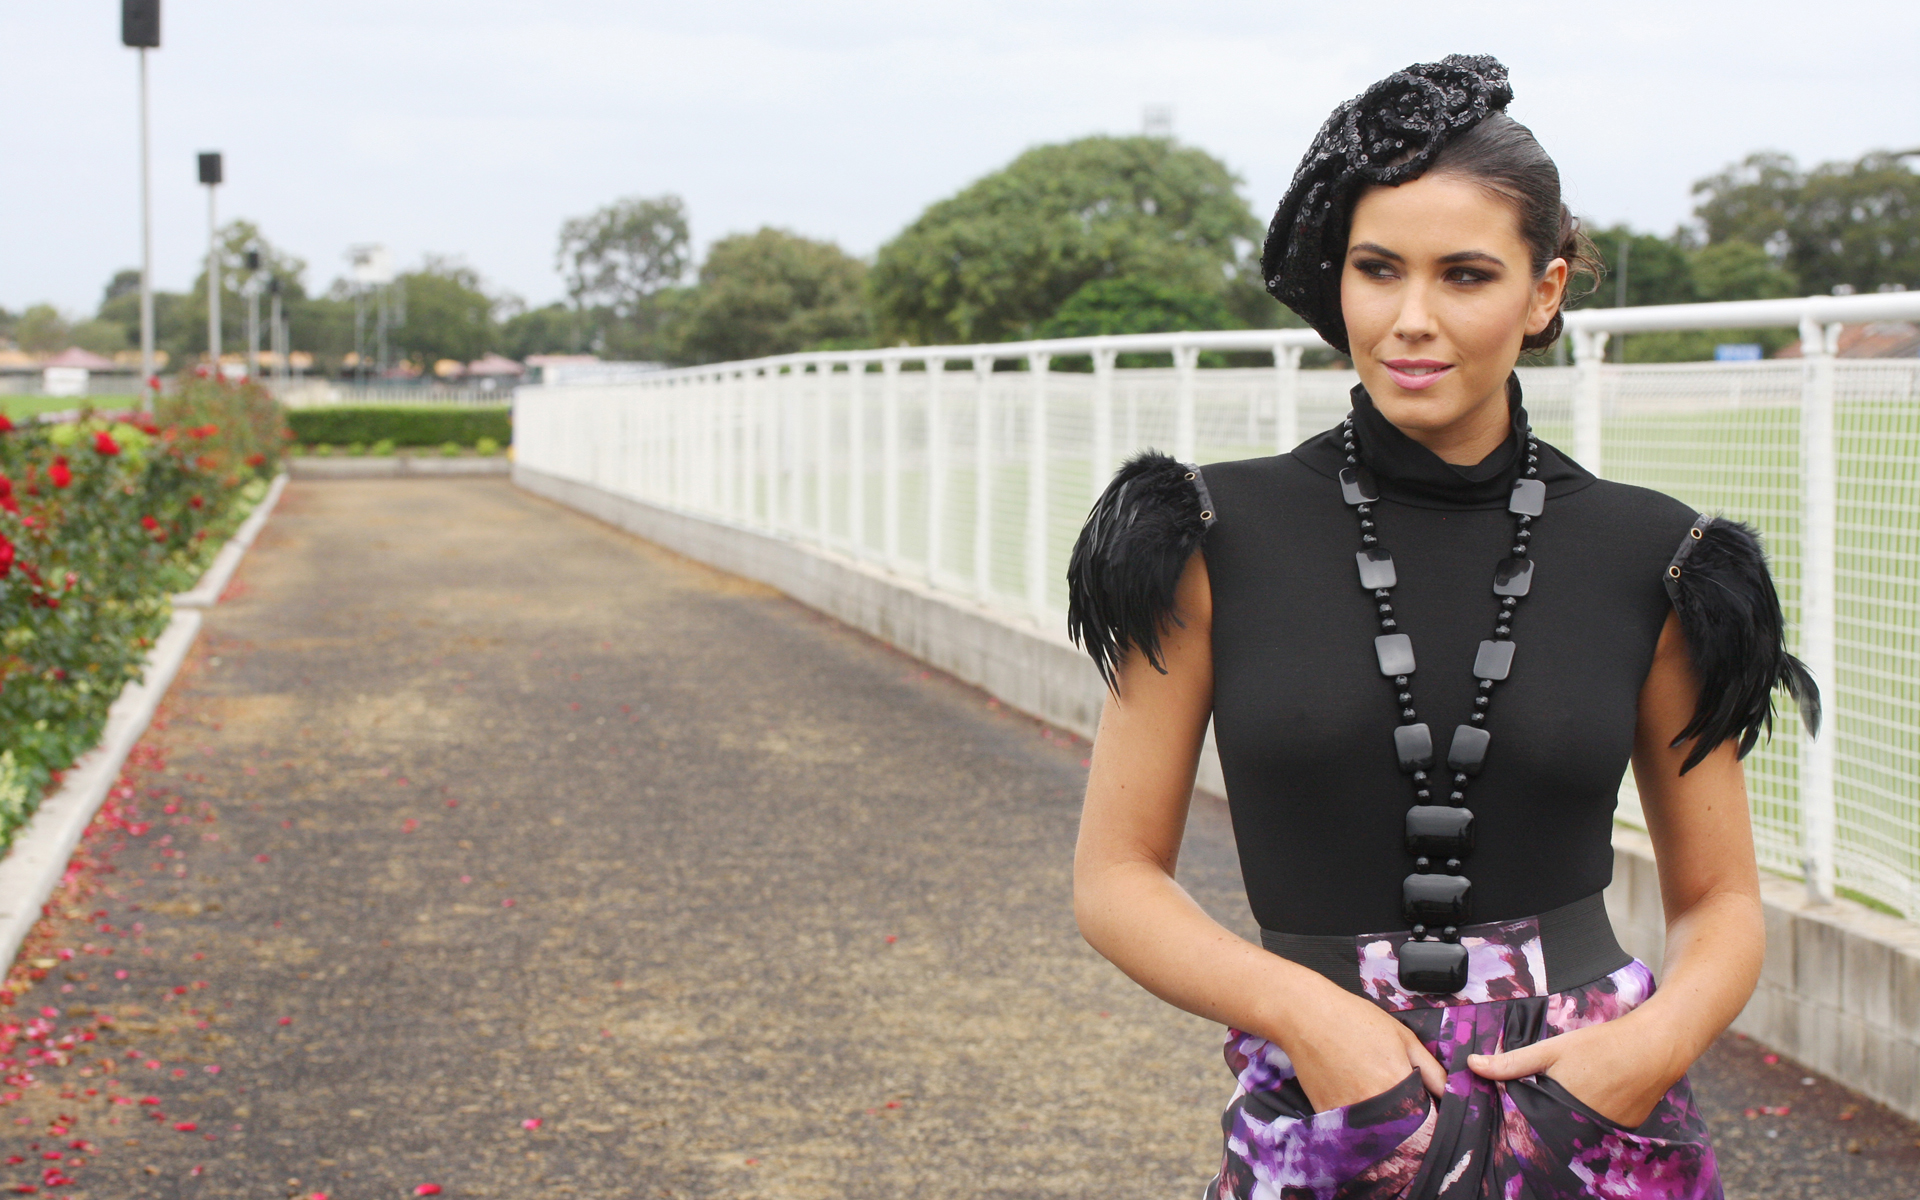 Style Magazines, Eagle Farm Racecourse